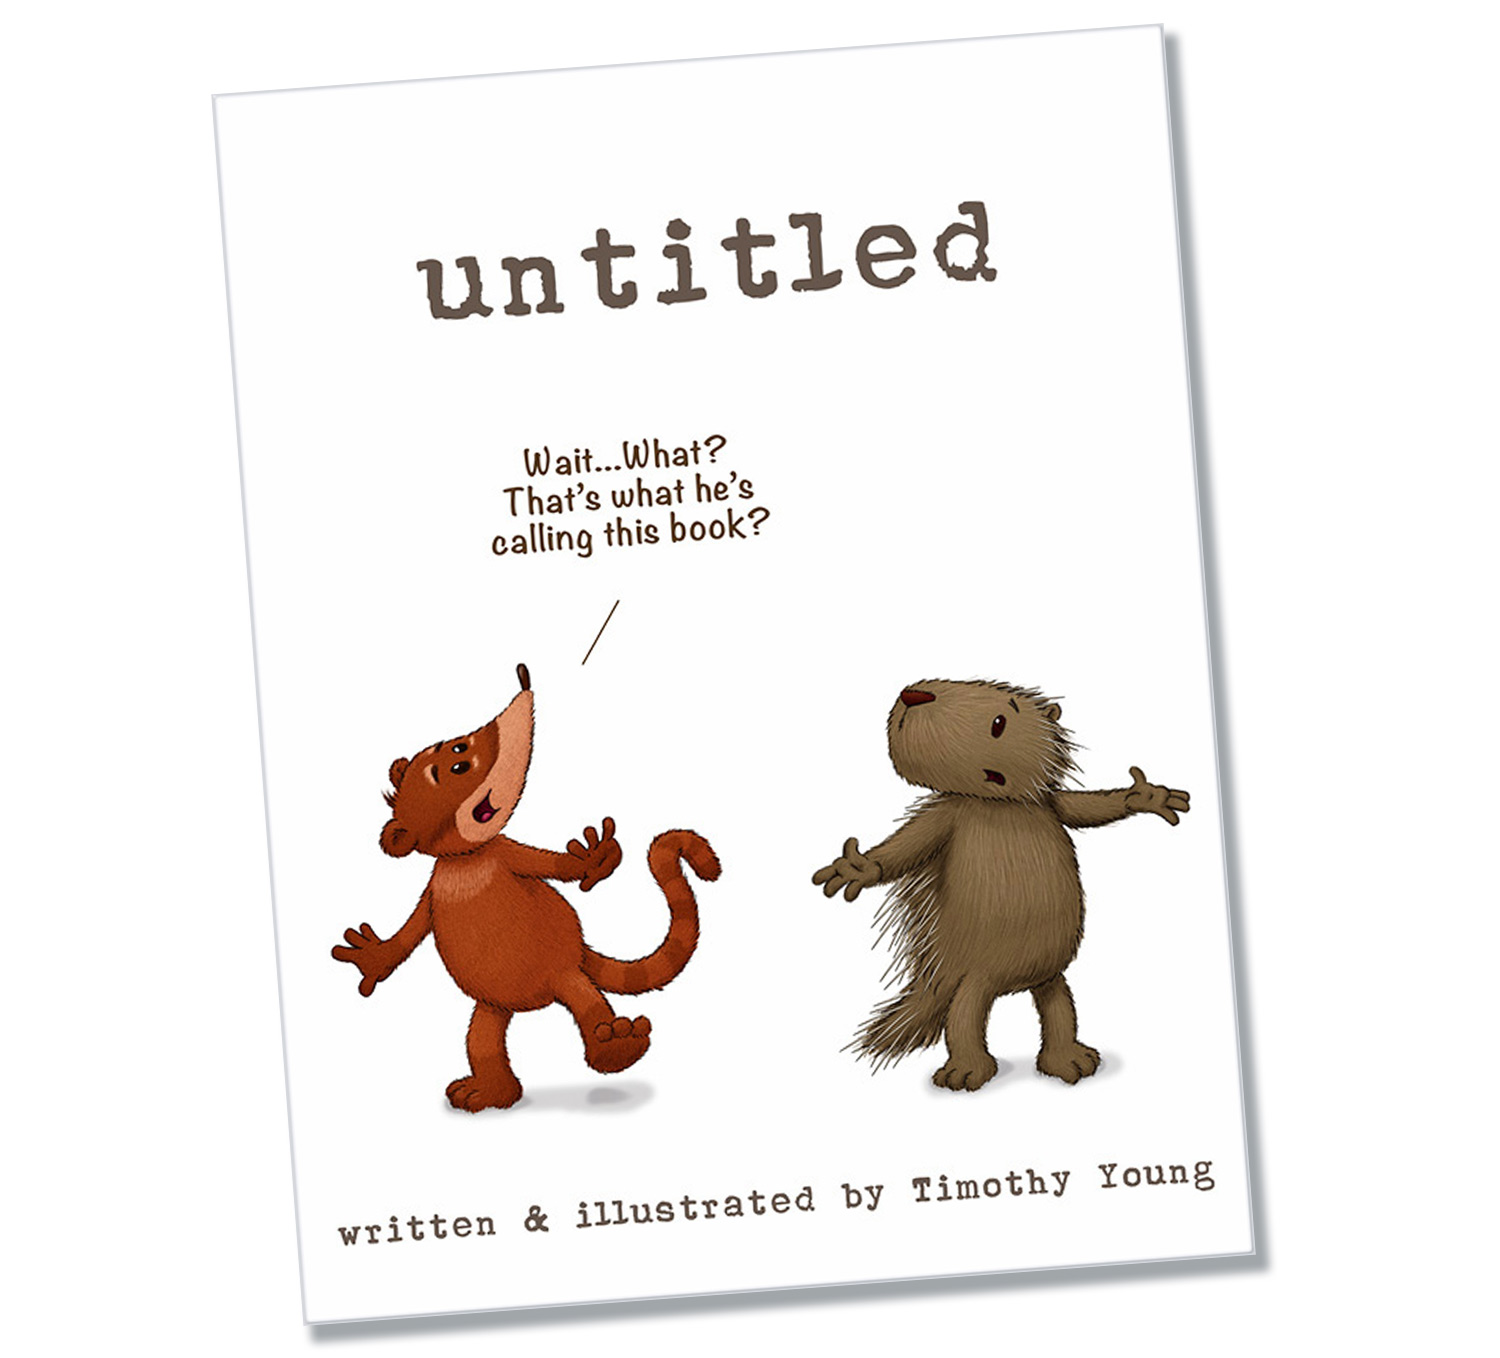 untitled author Timothy Young ISBN13: 9780764357084 Schiffer Publishing 2019